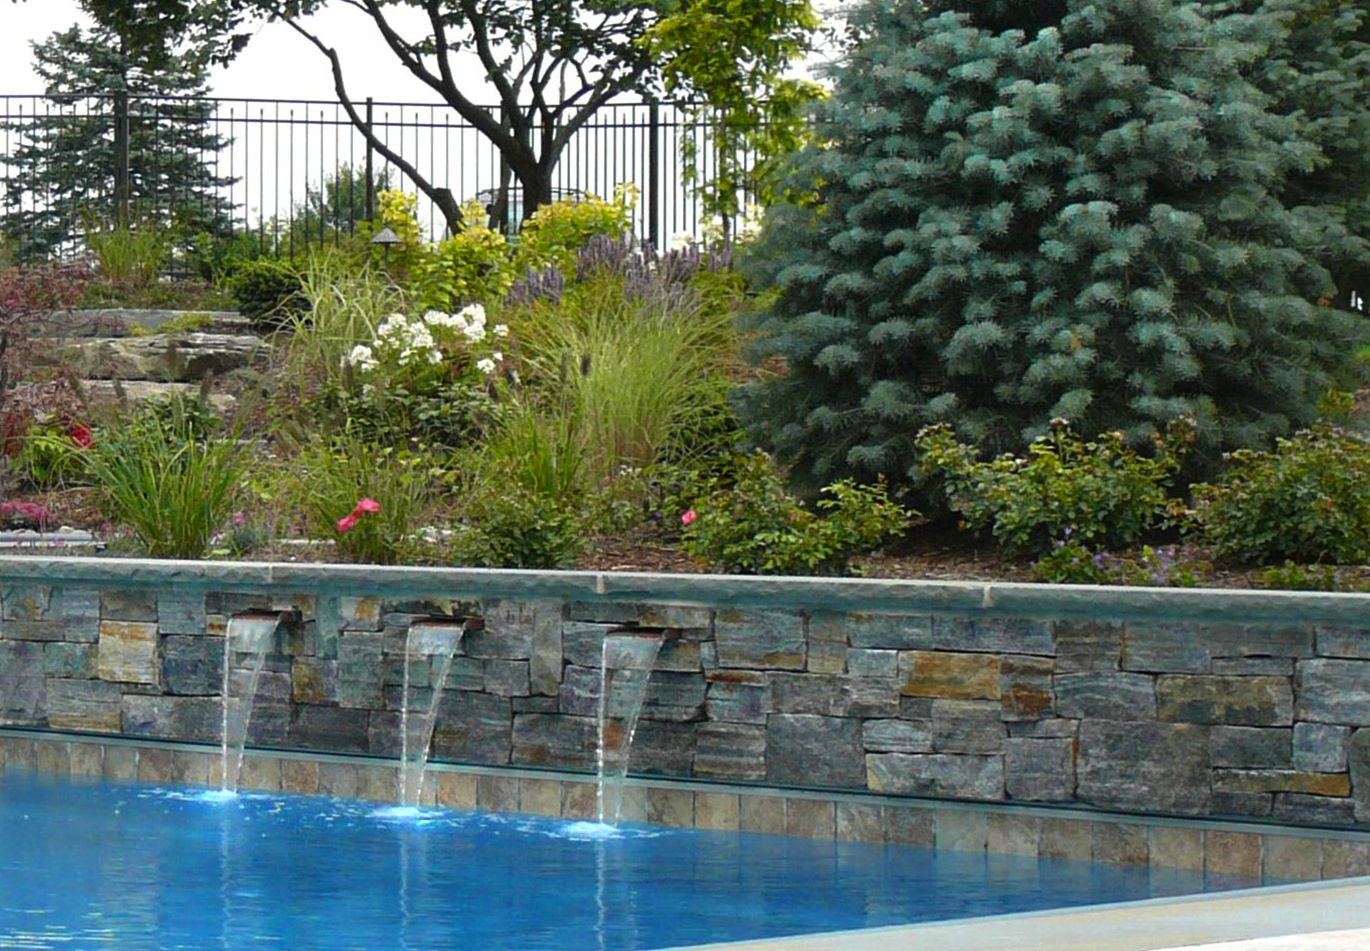 Enjoy the soothing sounds of rushing water while relaxing by the pool.